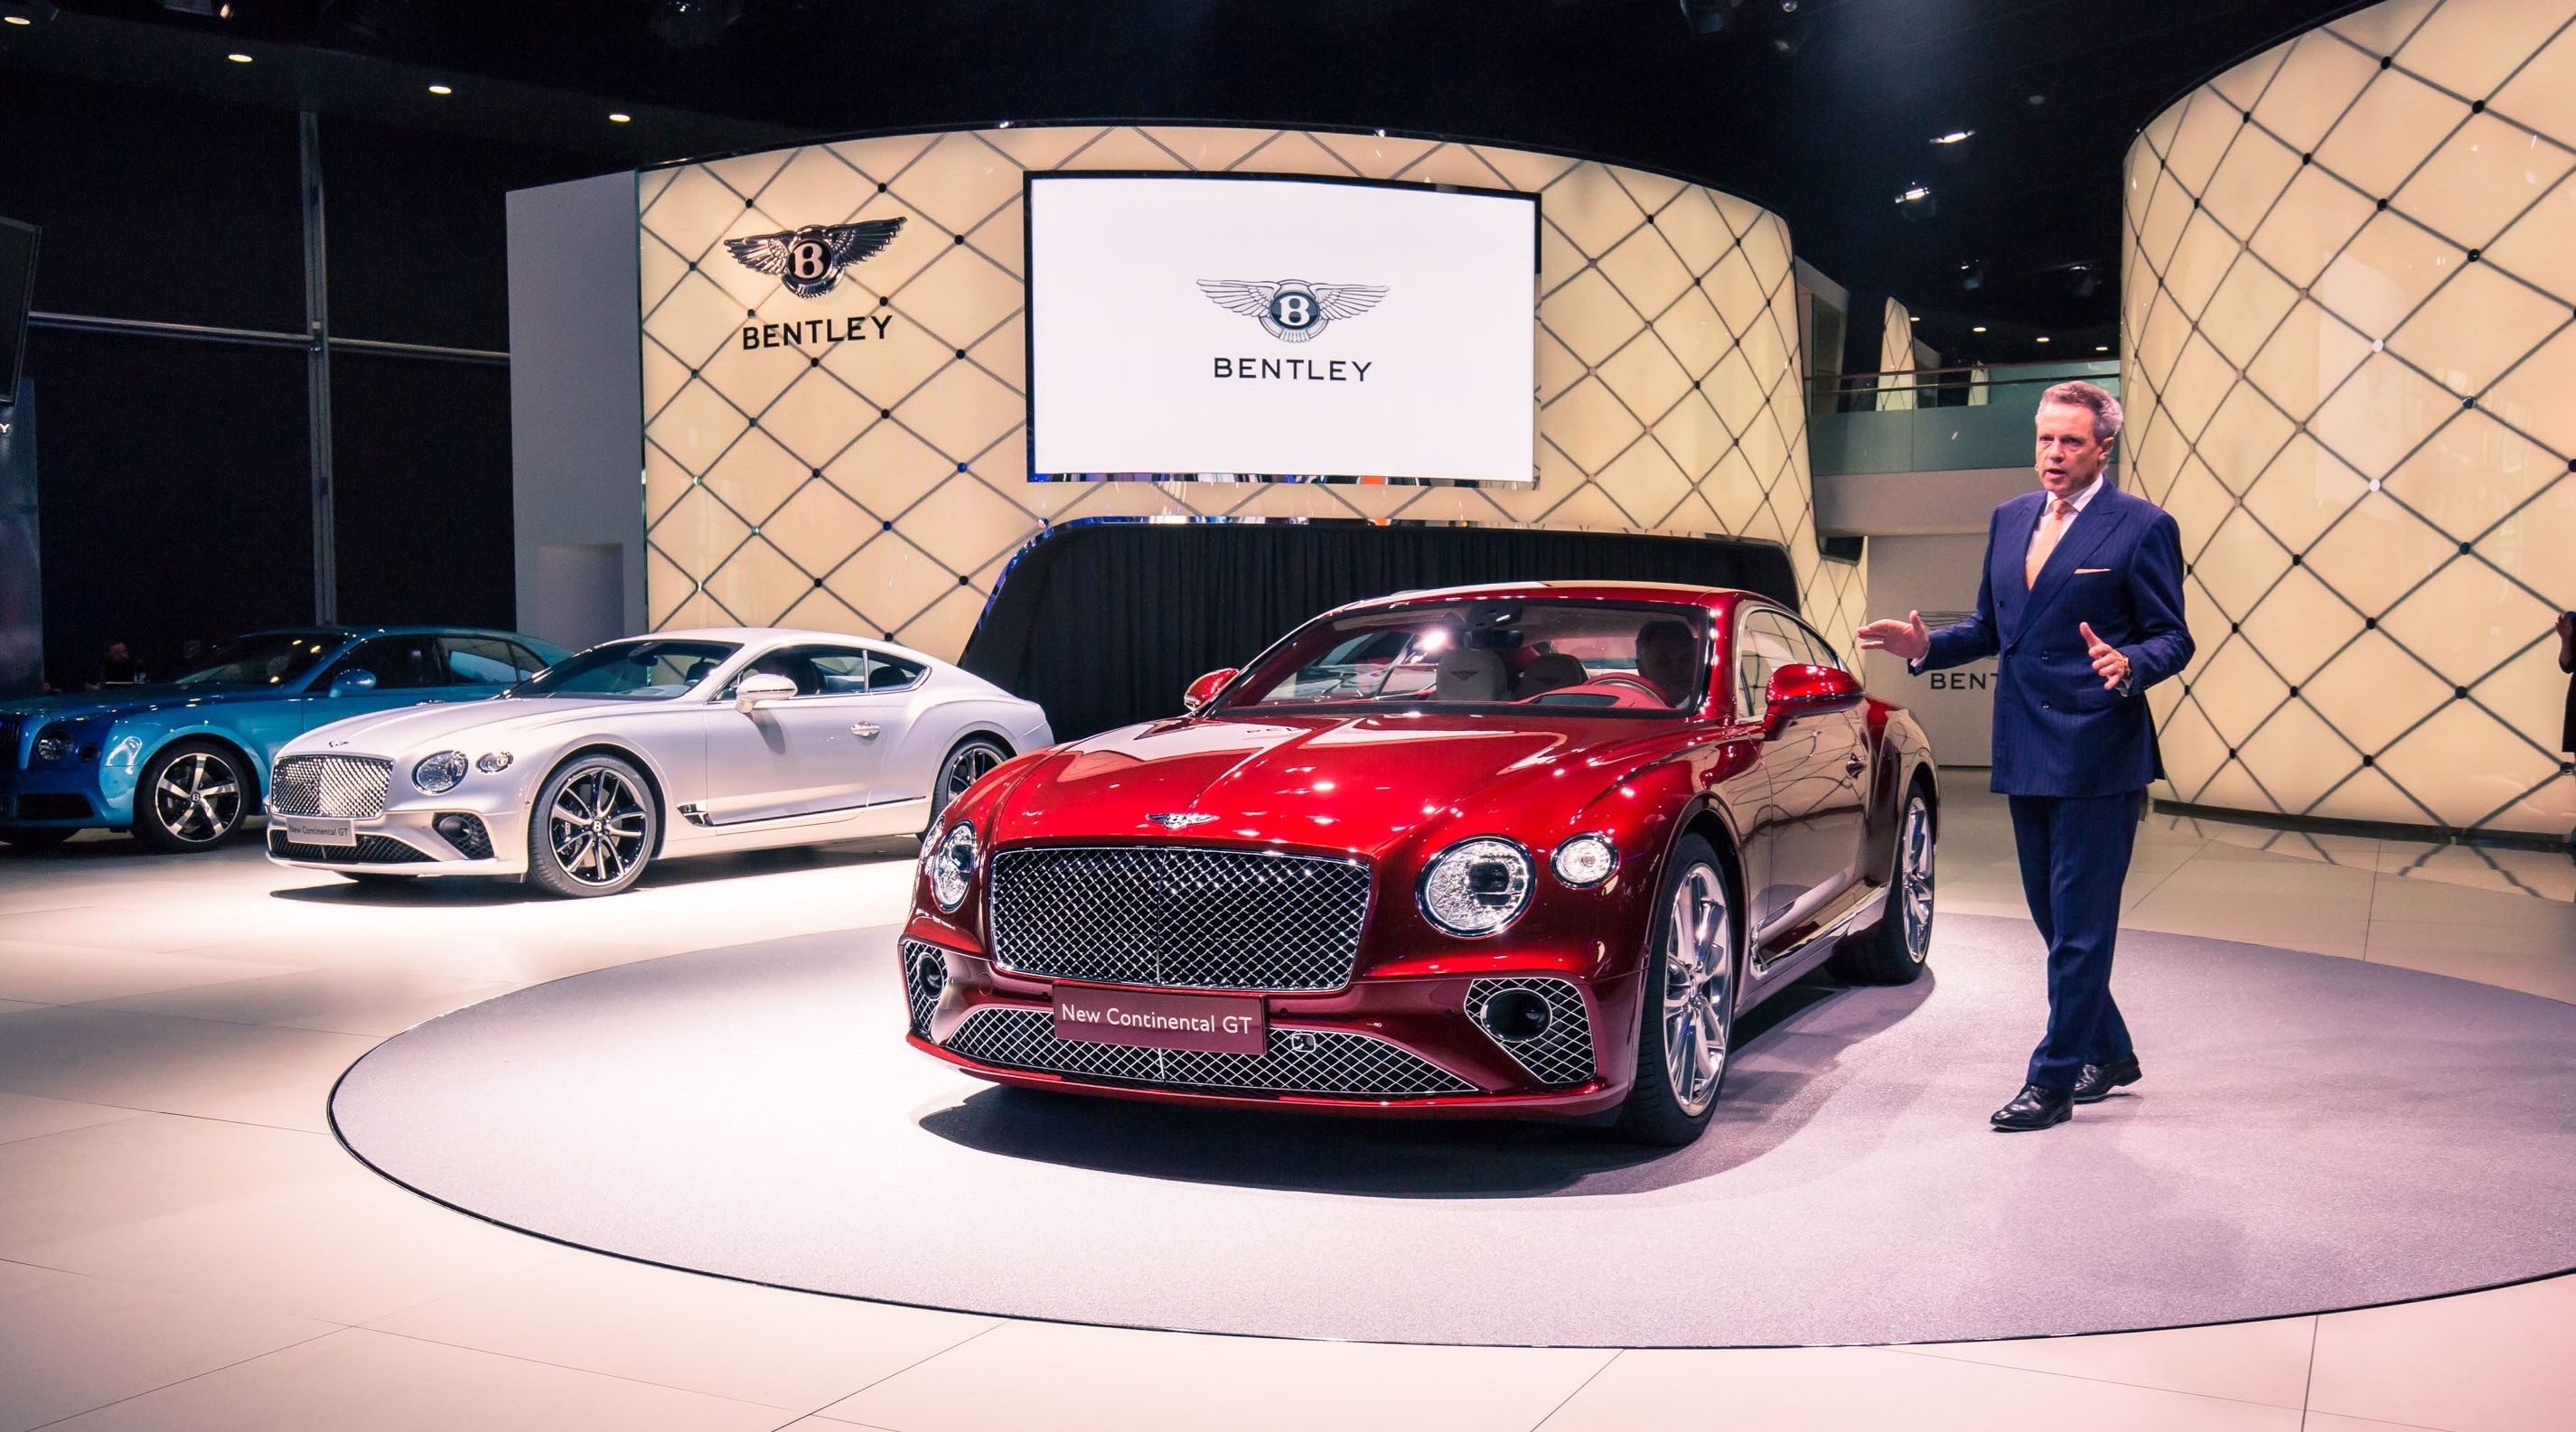 The all-new Continental GT made its global debut at the IAA 2017 in Frankfurt